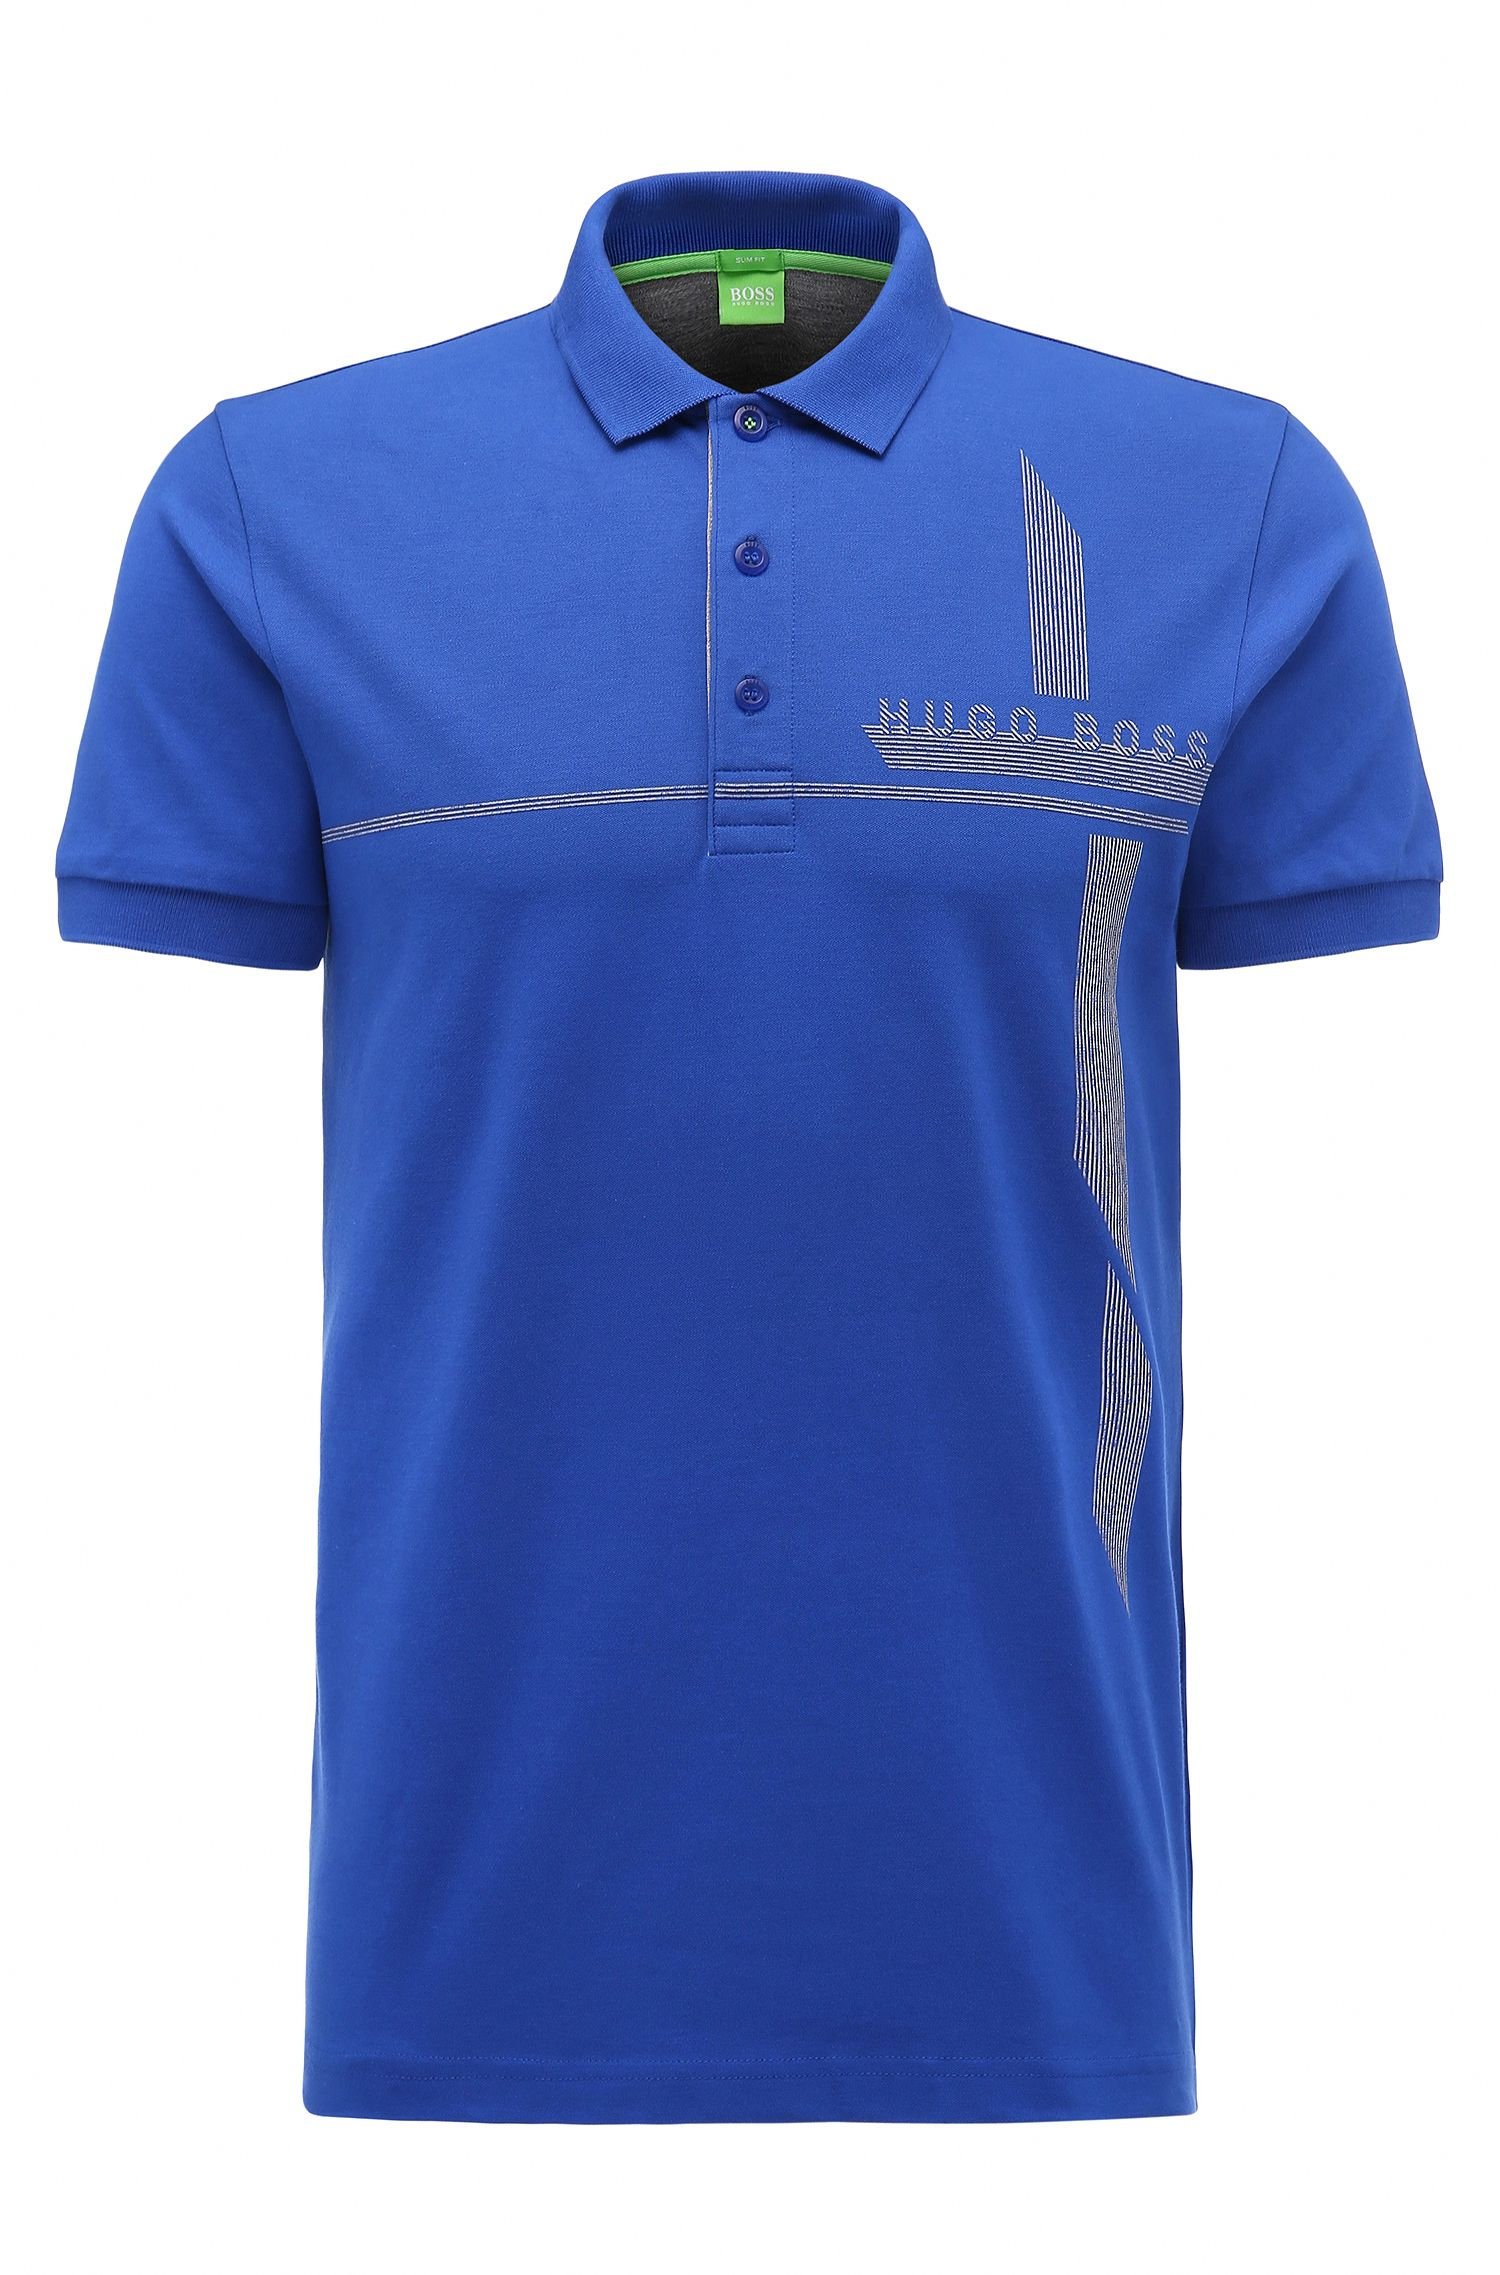 Piqué Stretch Cotton Polo Shirt, Slim Fit | M-Paule